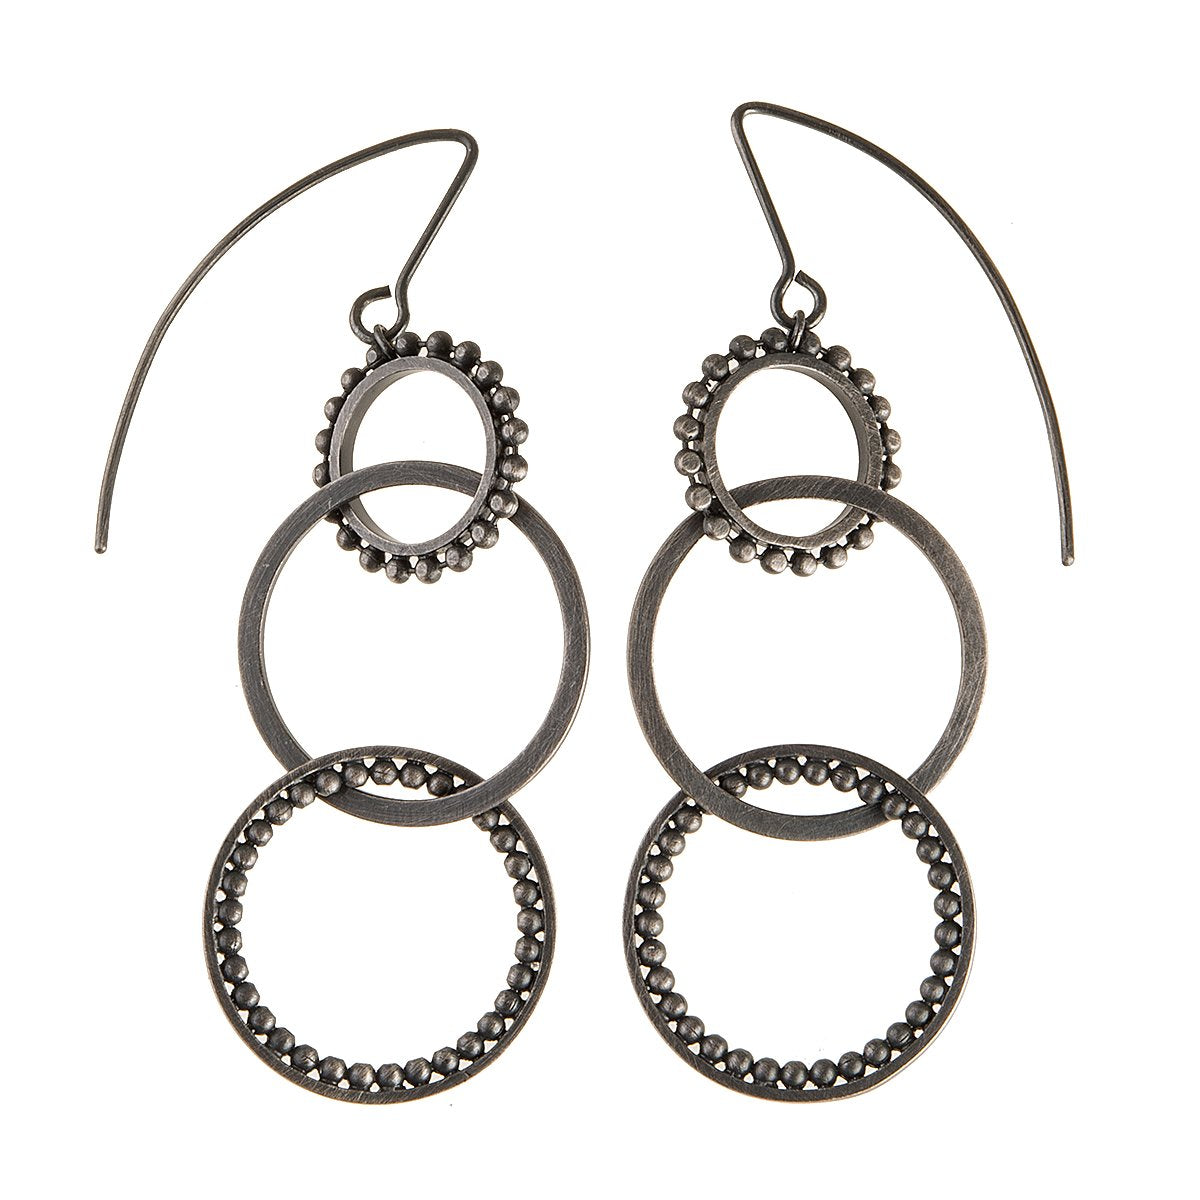 Earrings from Ray collection - RYK28-2